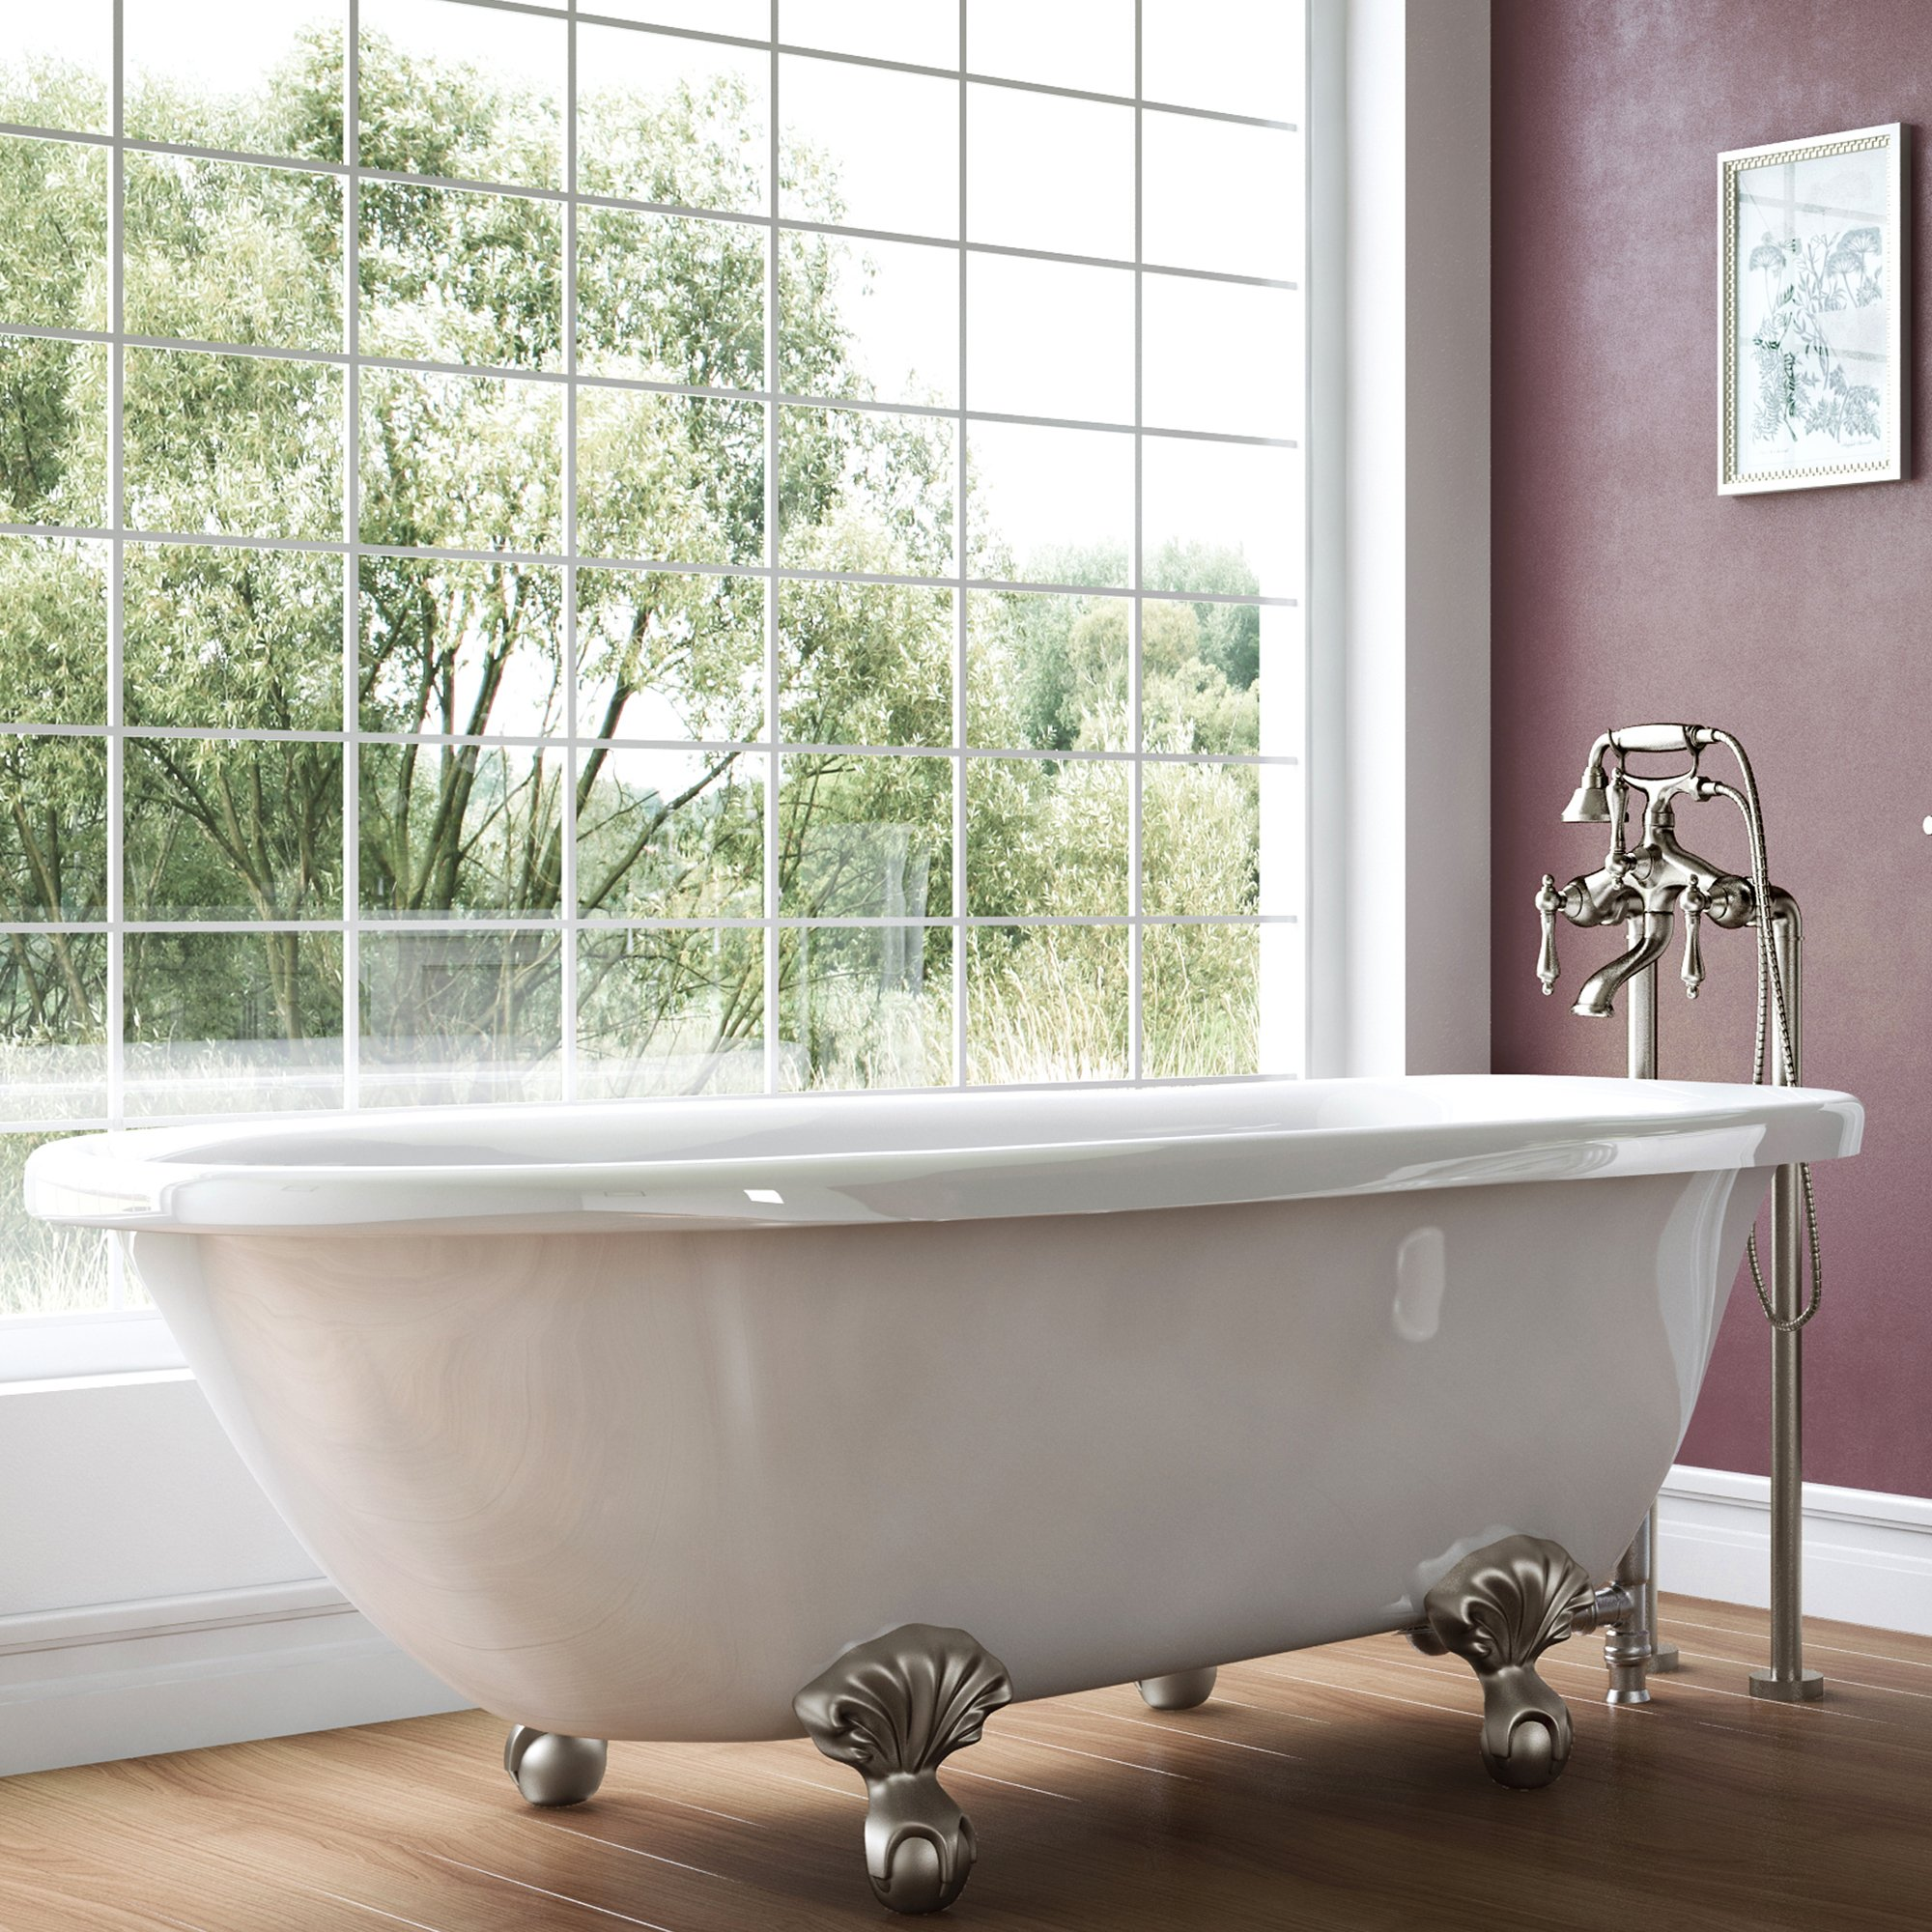 Luxury 54 inch Small Vintage Clawfoot Tub in White, Includes Brushed Nickel Ball and Claw Feet and Drain, From The Highview Collection by Pelham & White